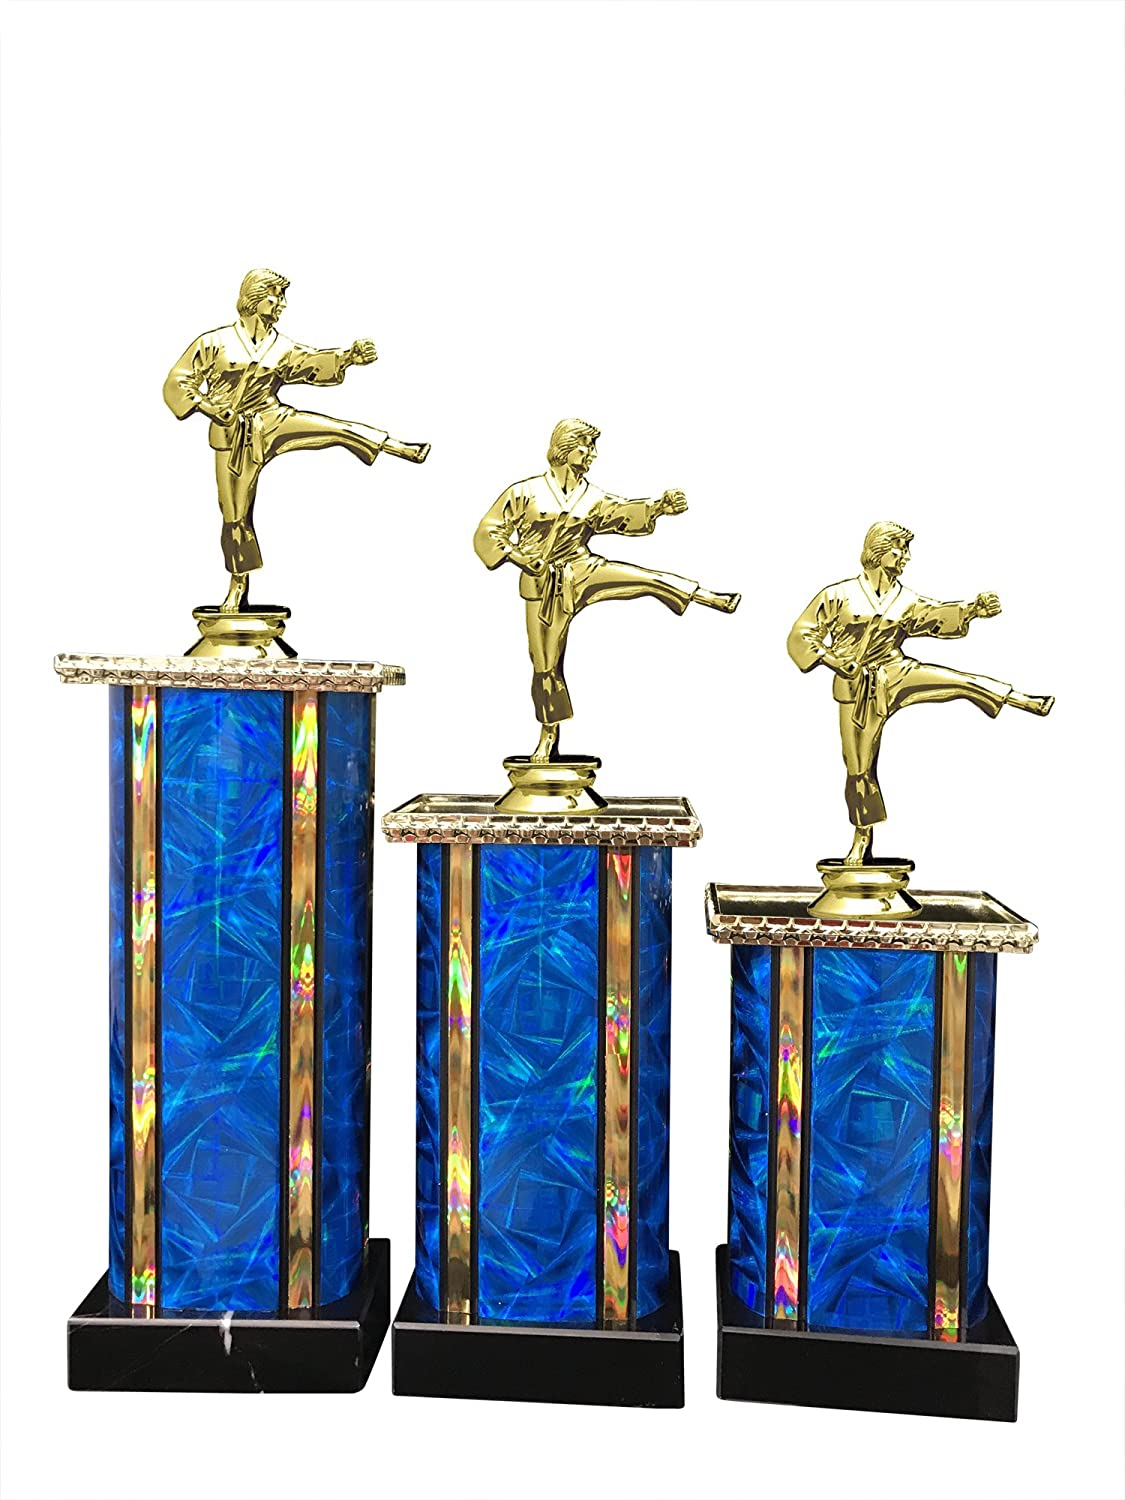 メスMartial Arts Award Trophy ( 3 - Pack ) 1st 2 nd 3rd Place B0752T5PZ6